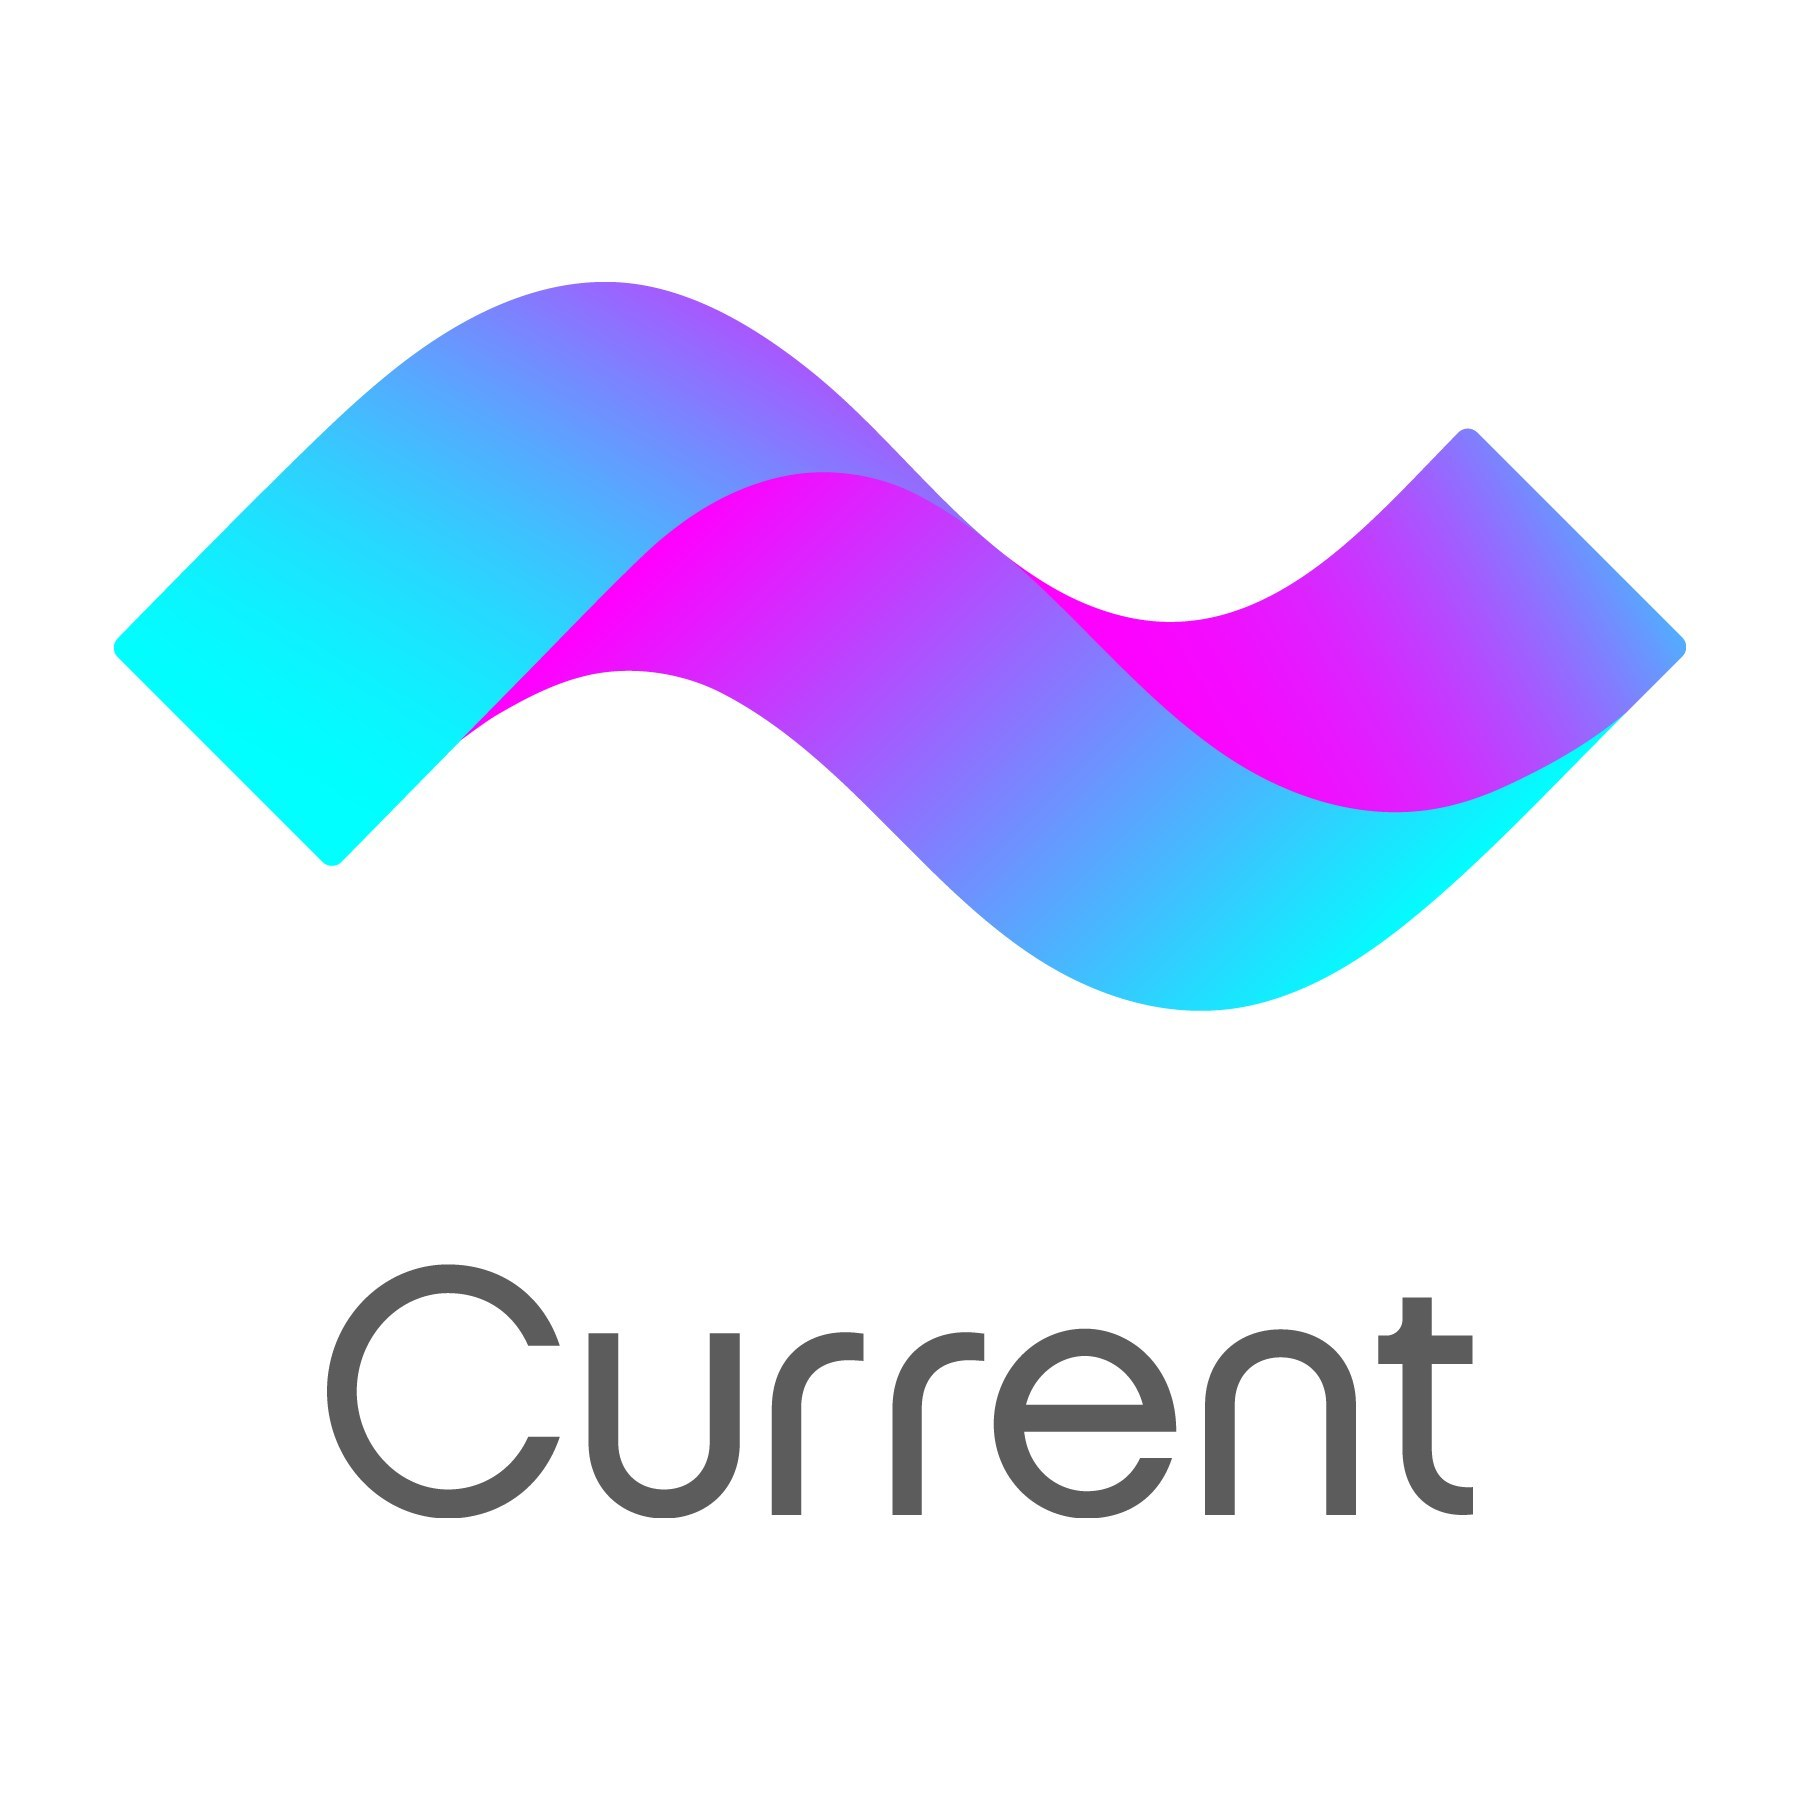 Current is a financial technology company based in New York that makes a debit card and companion app for teens. (PRNewsfoto/Current)